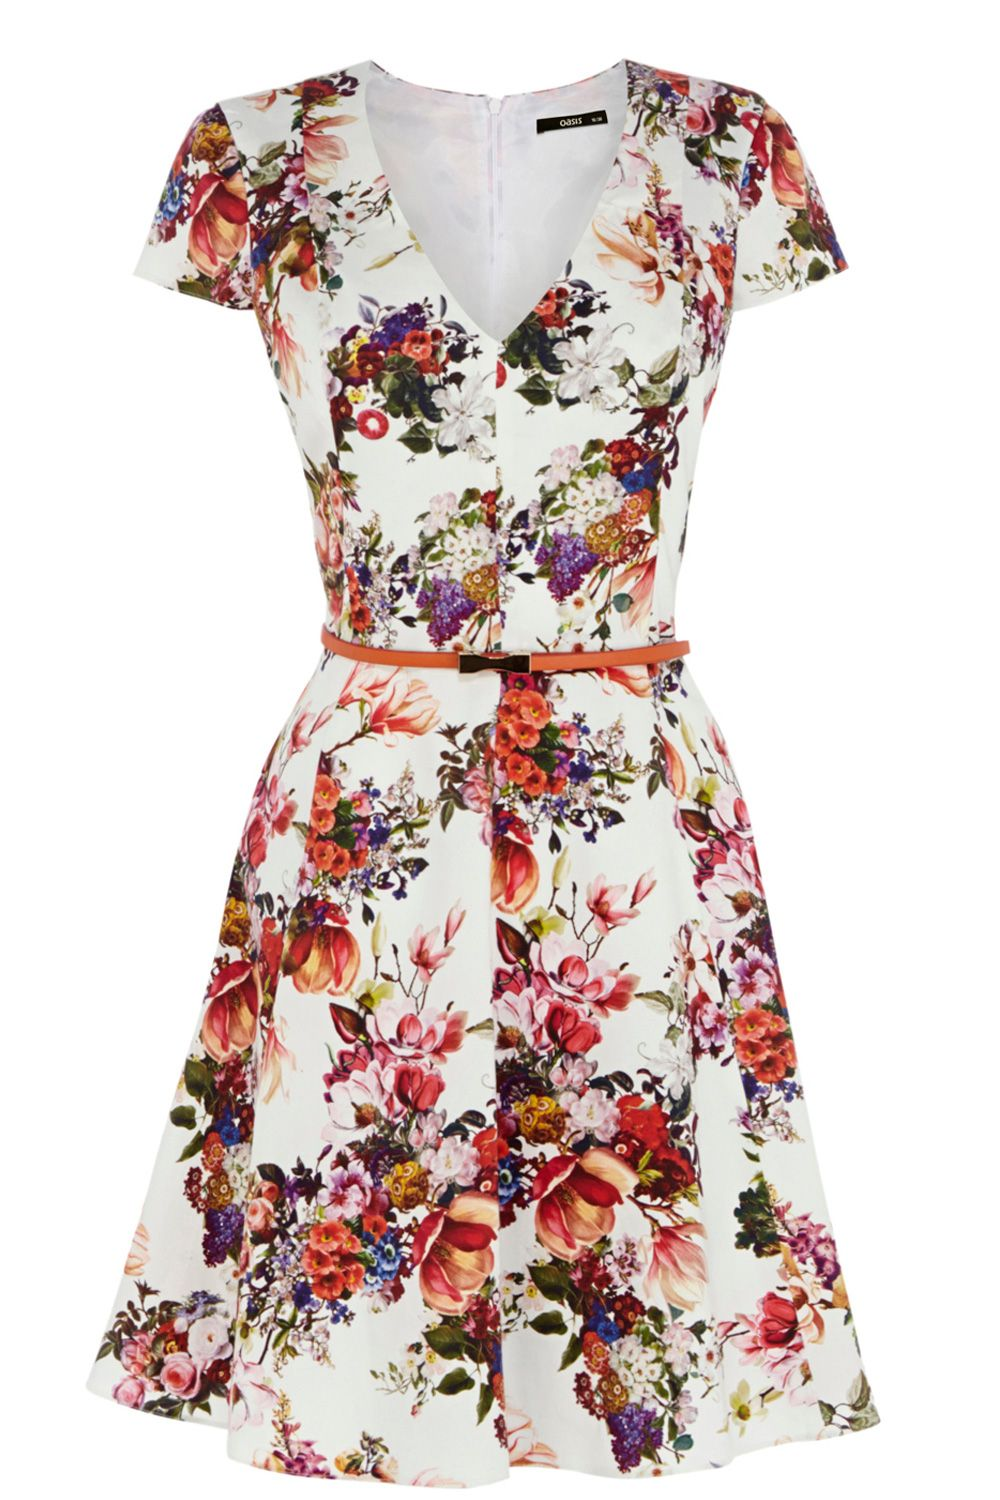 Botanical garden skater dress